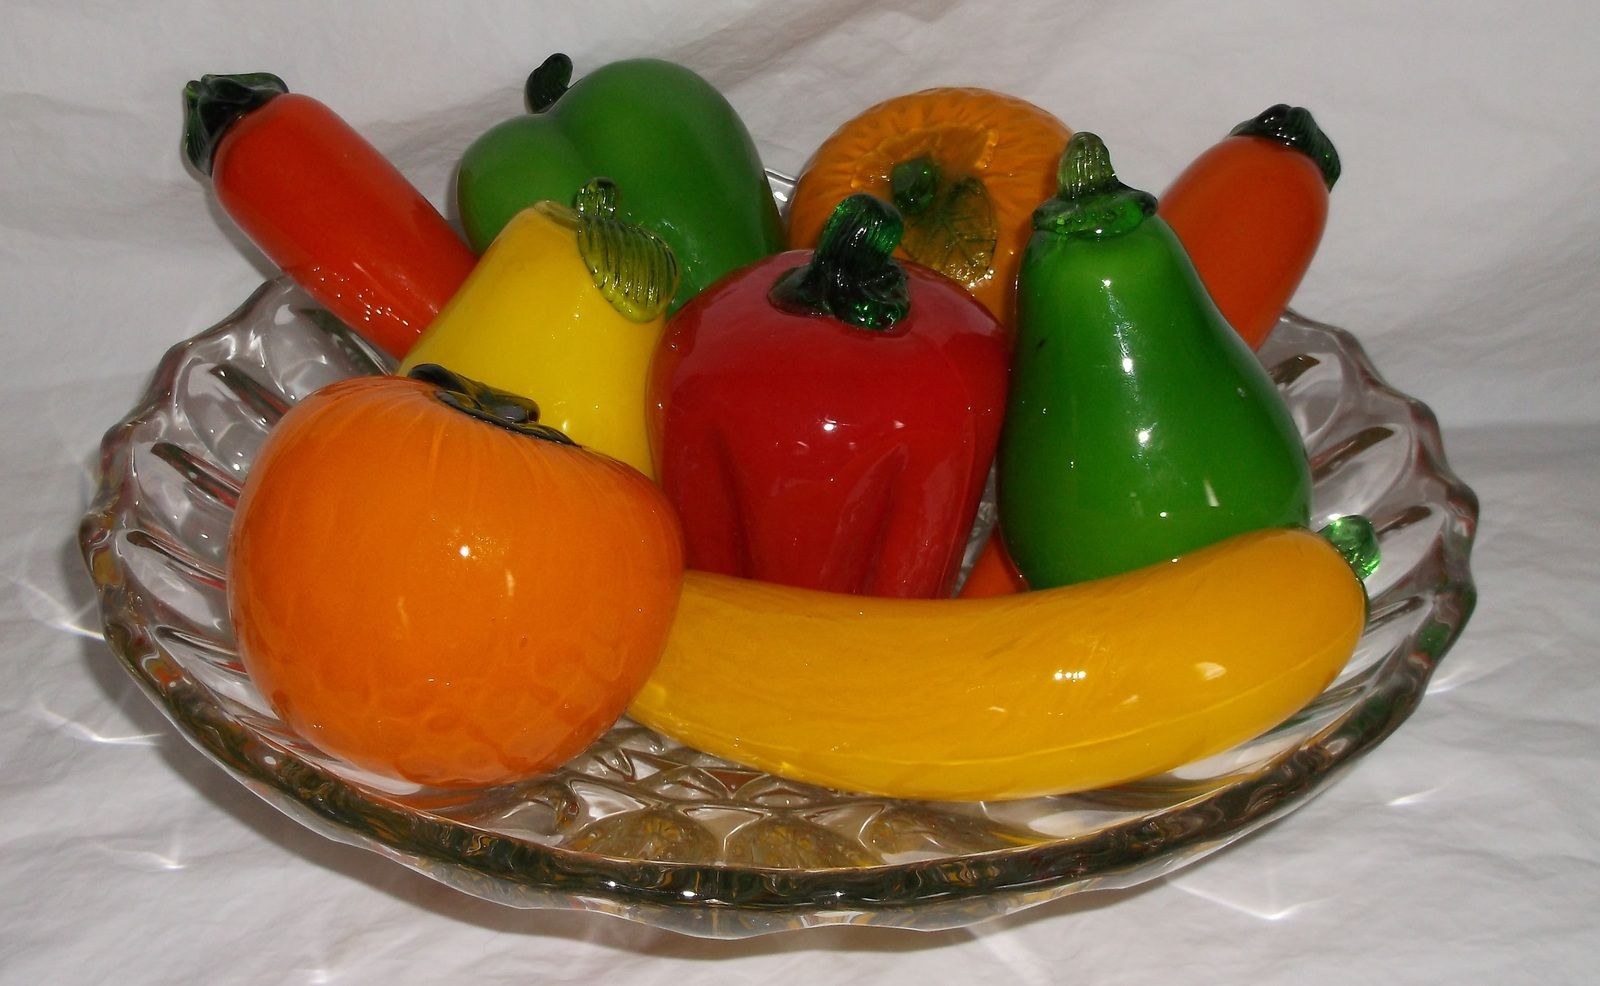 Vintage Murano Glass Fruits Vegetables Pepper Carrot Pear Orange Banana 9 Pieces Fruits And Veggies Fruits Vegetables Glass Blowing